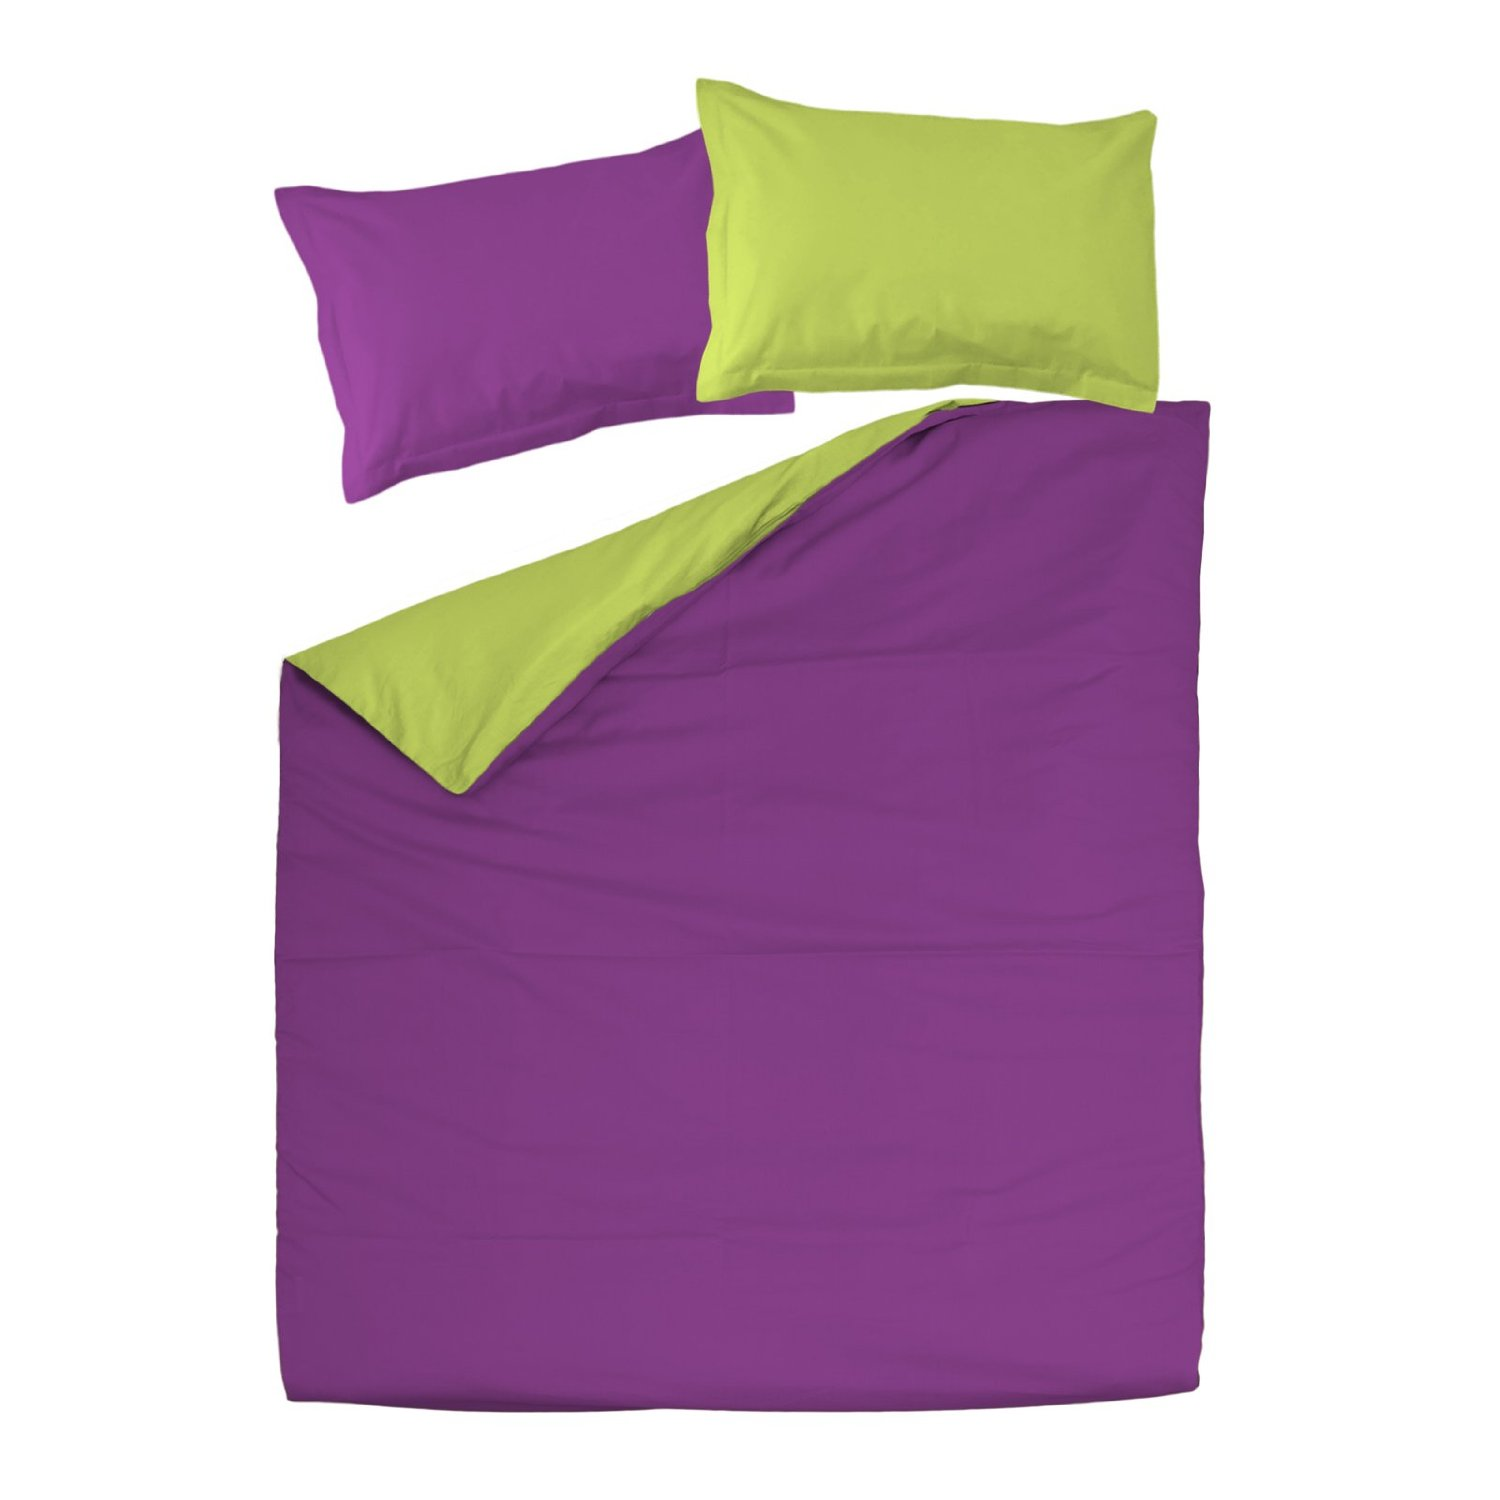 comforter solid california purple asli bed aetherair dreaded sheets dark setsing bedding photo co queen size